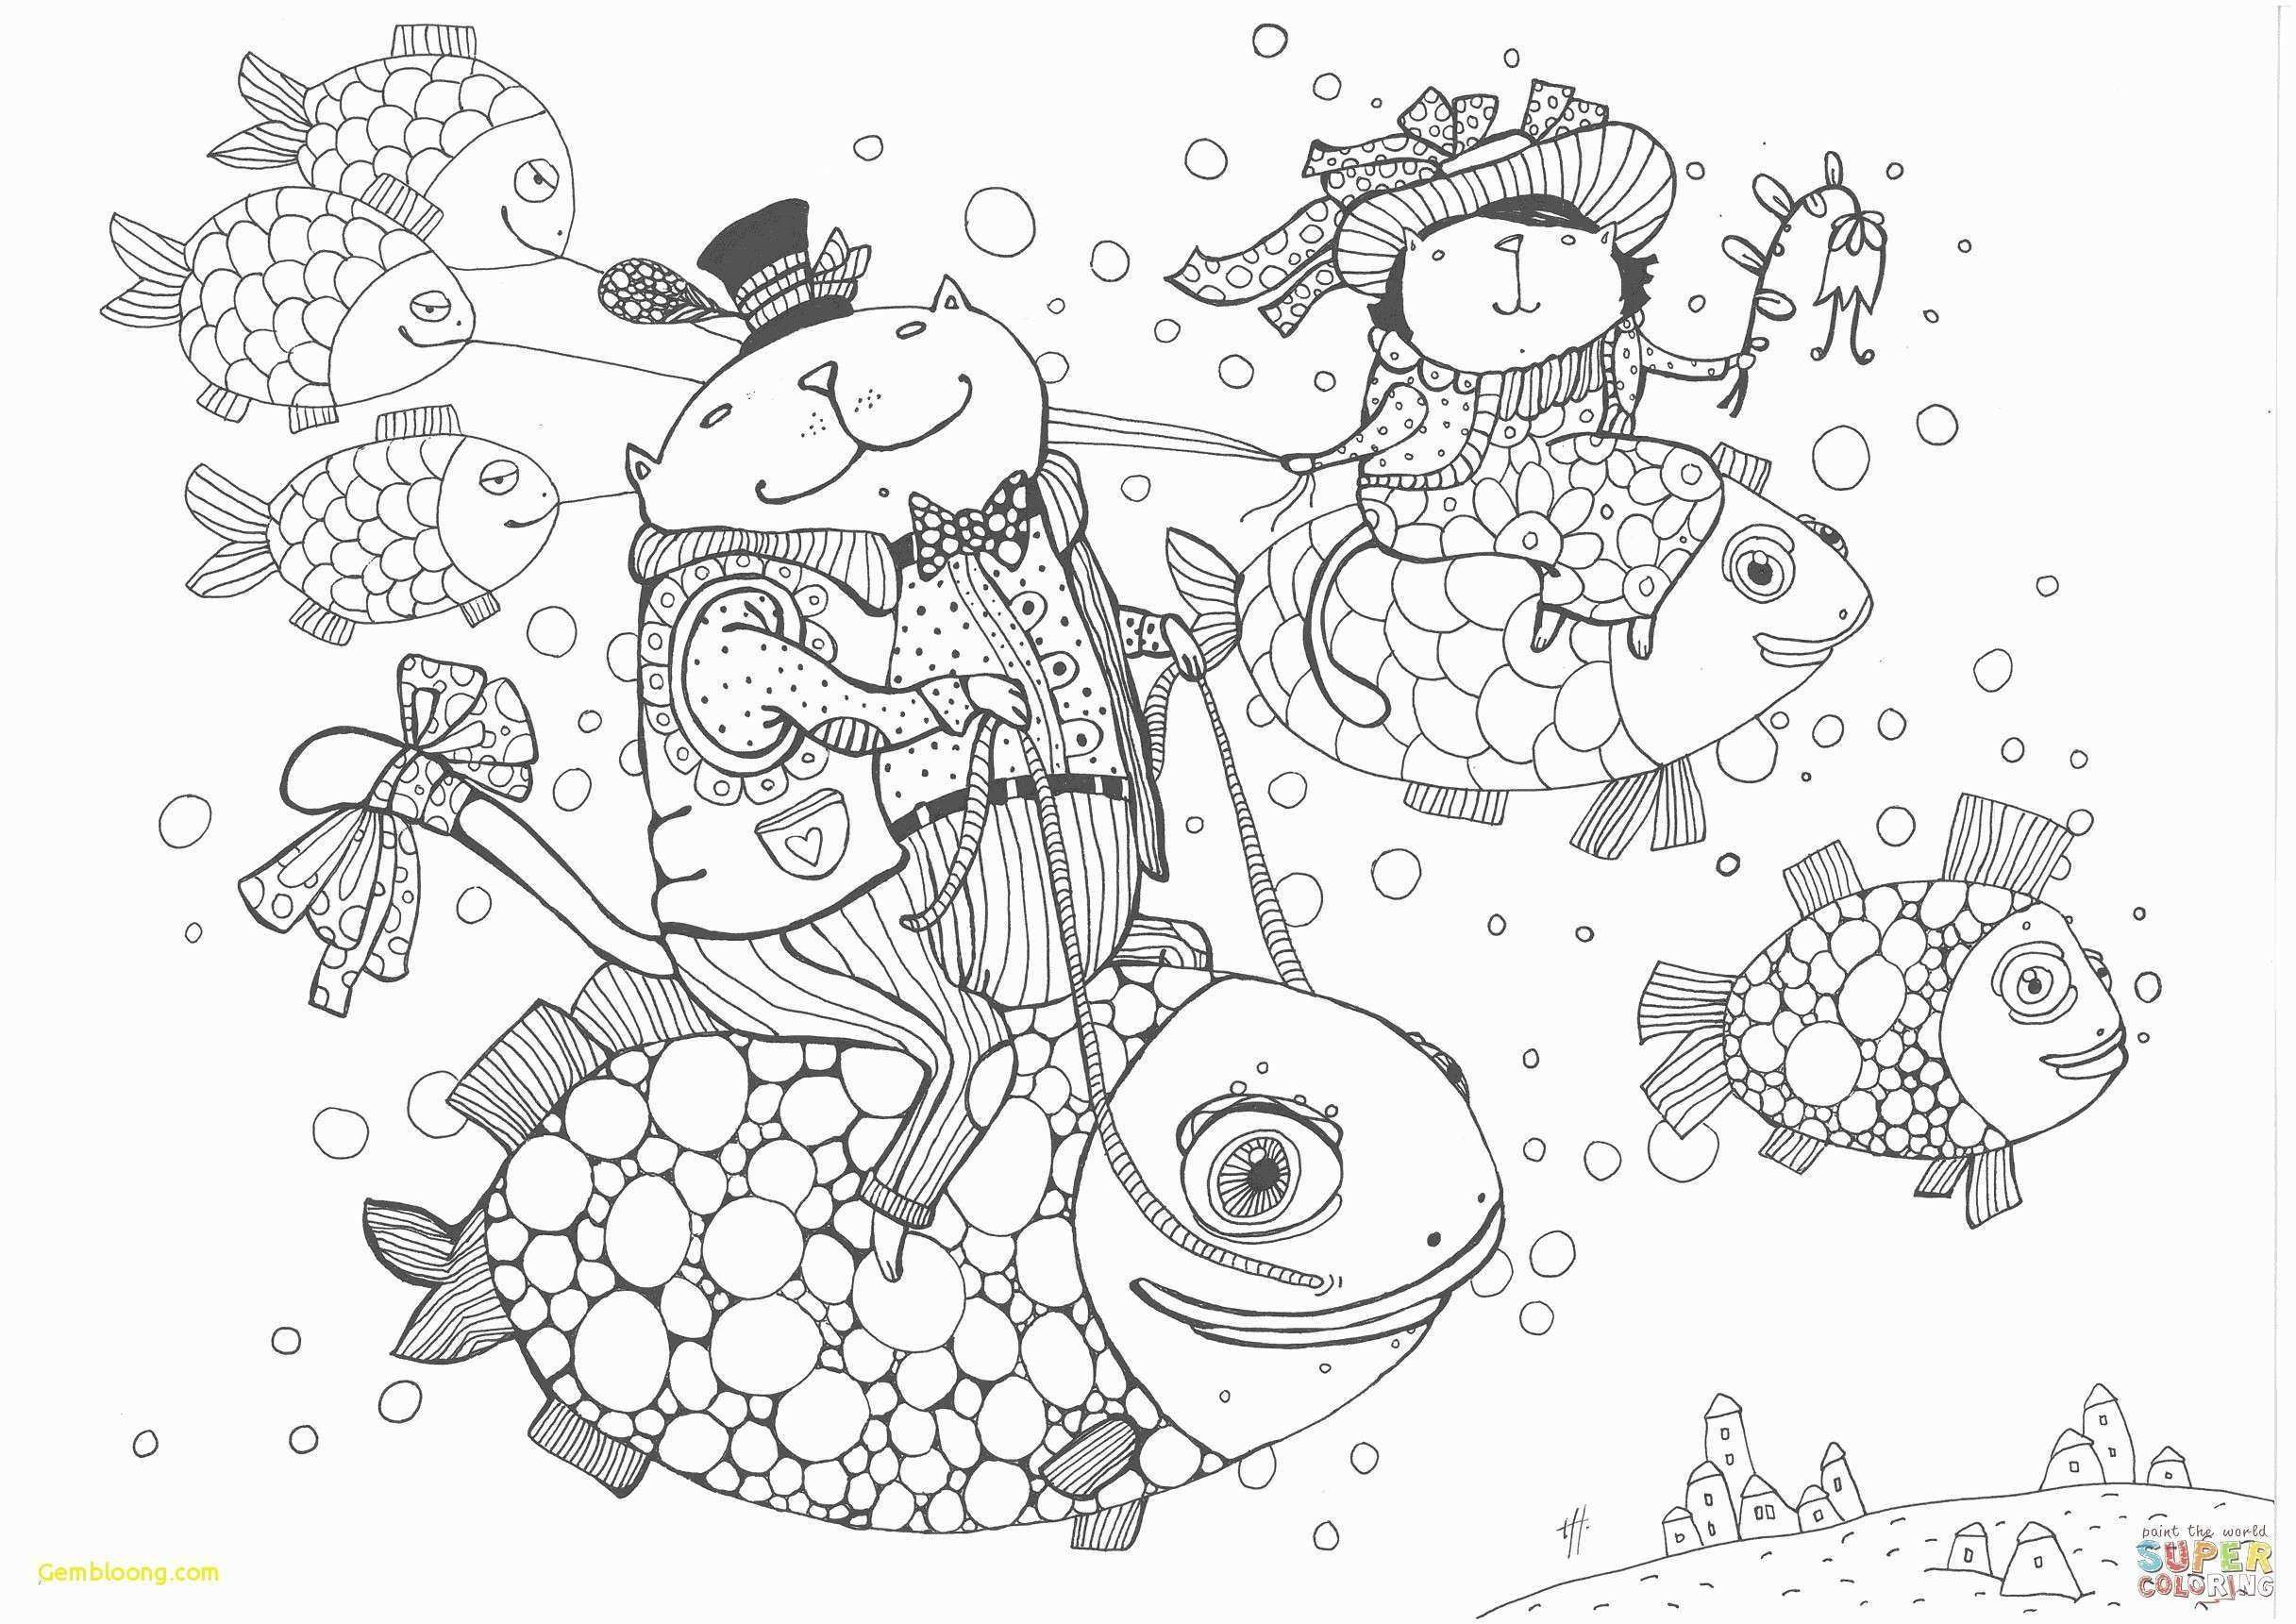 Anna Und Elsa Malvorlagen Frisch Frozen Printable Coloring Pages New Elsa and Anna Coloring Sheets Stock